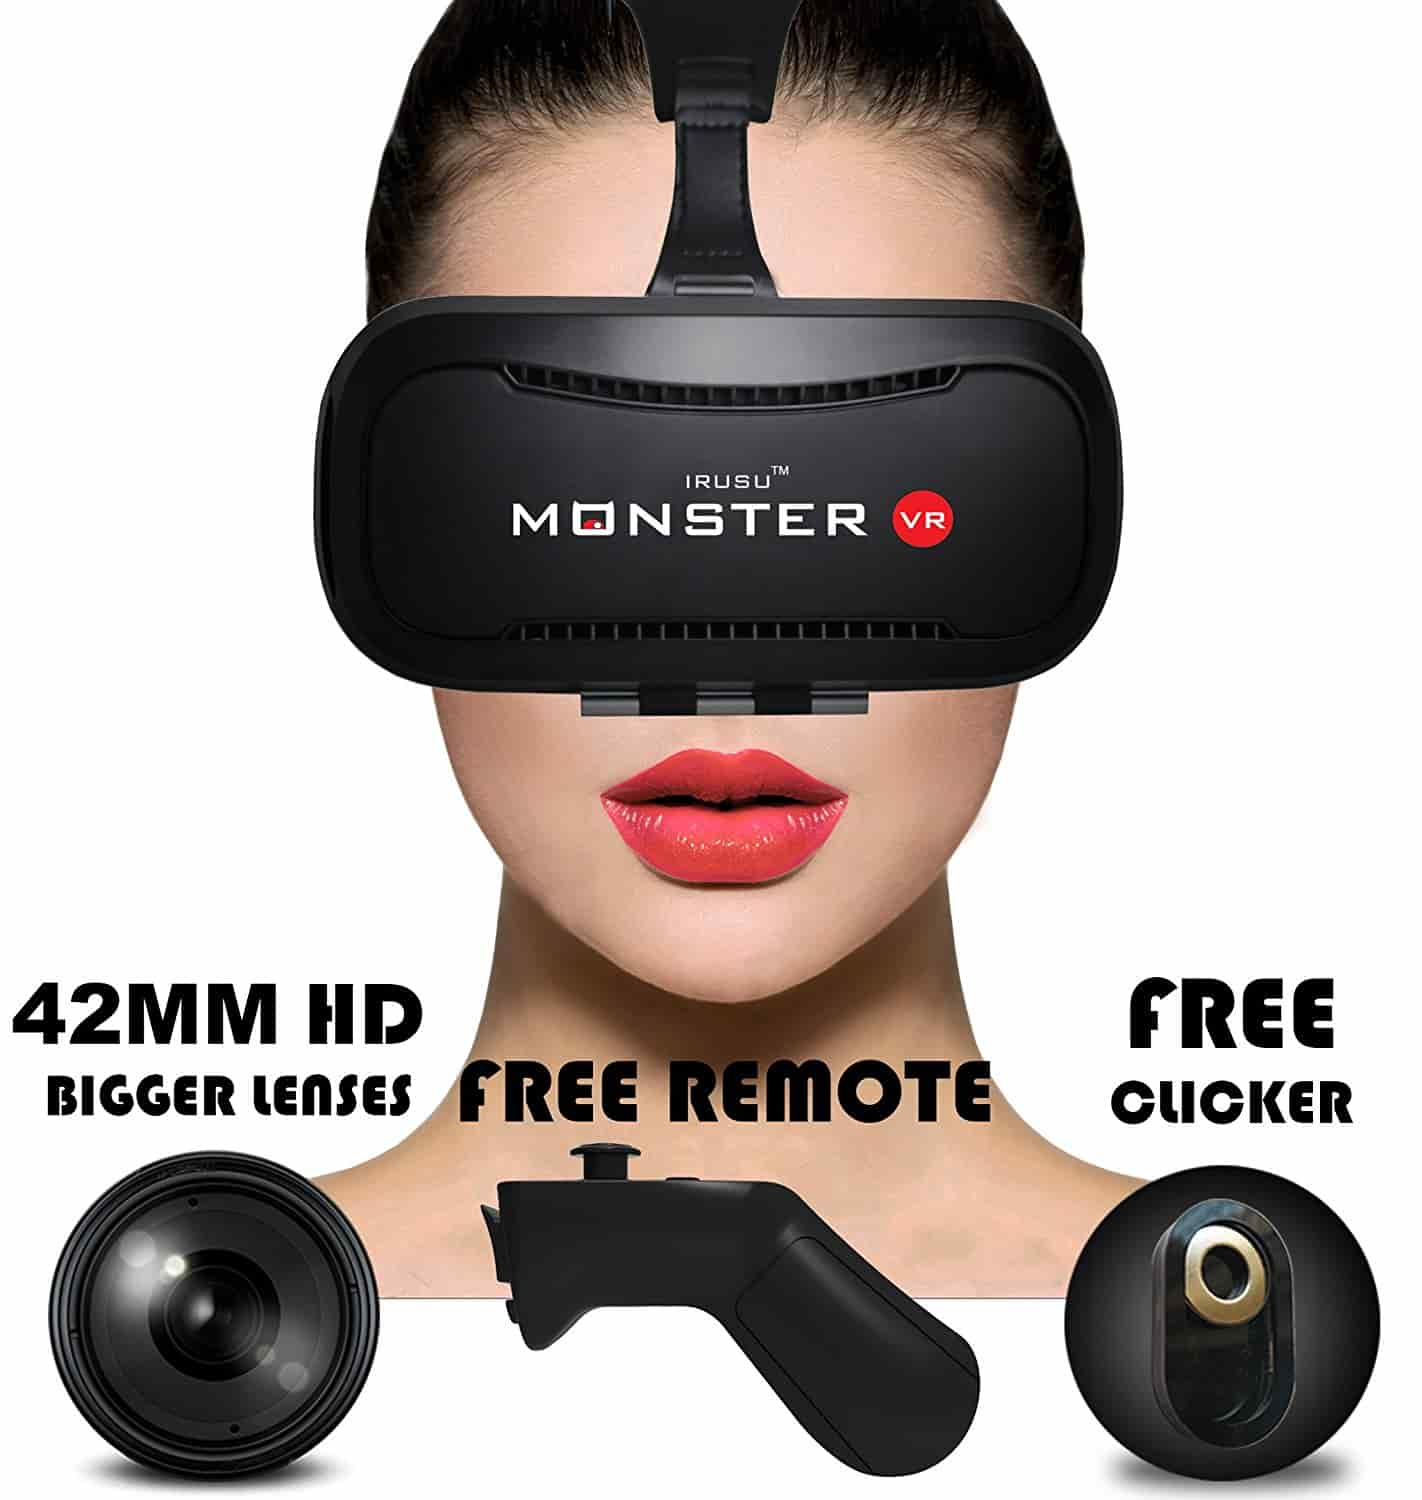 vr headsets for mobiles in india,vr headsets india,vr headset india